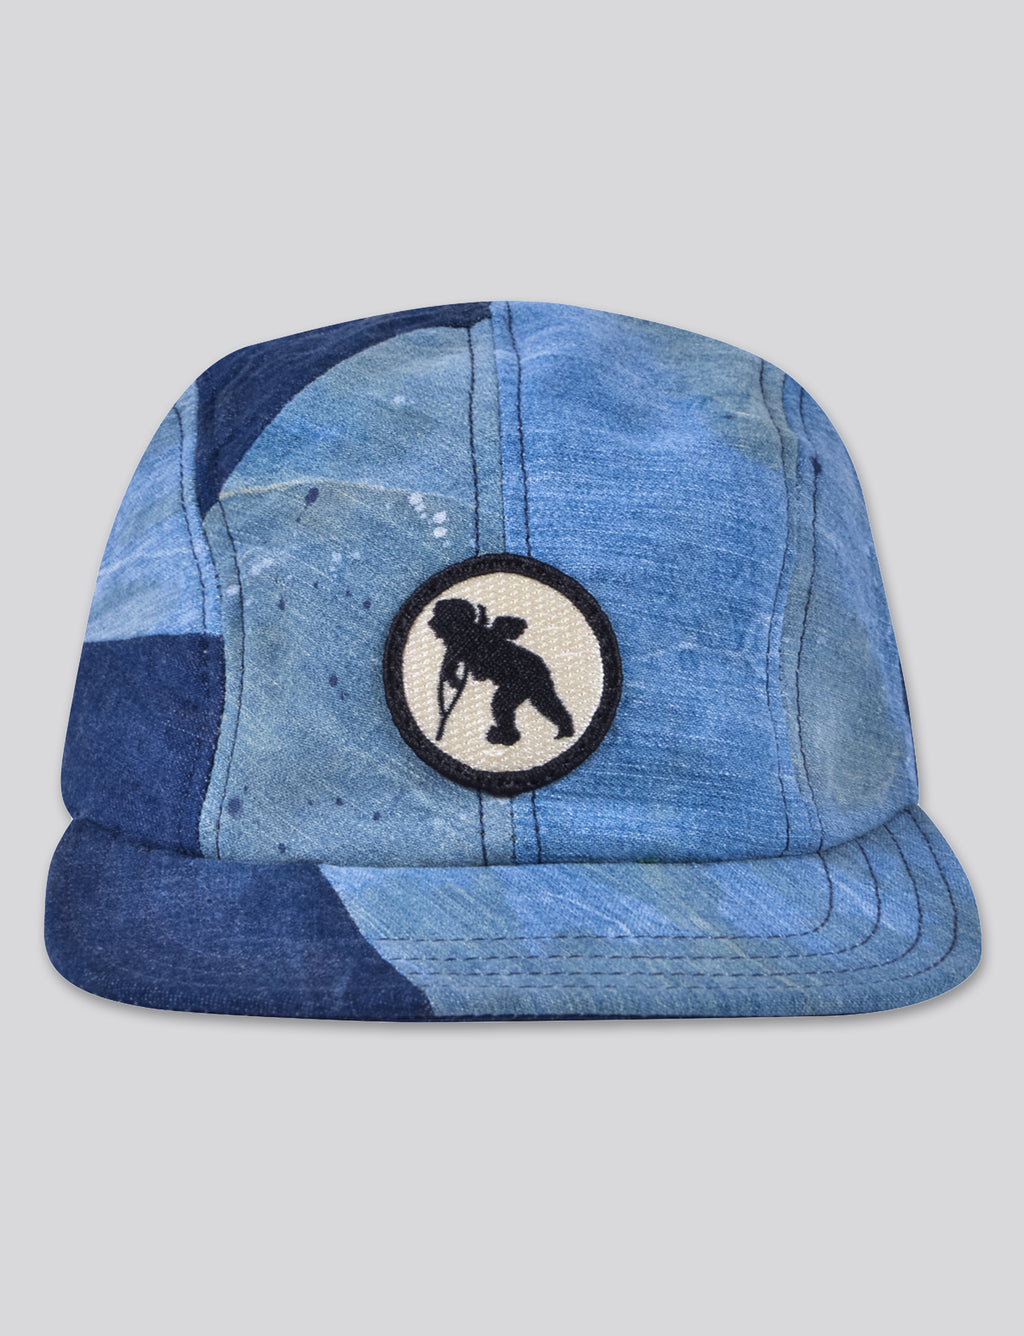 Prps - #6 Indigo Denim/Bleached Denim 4 Panel Hat - Hat - Prps